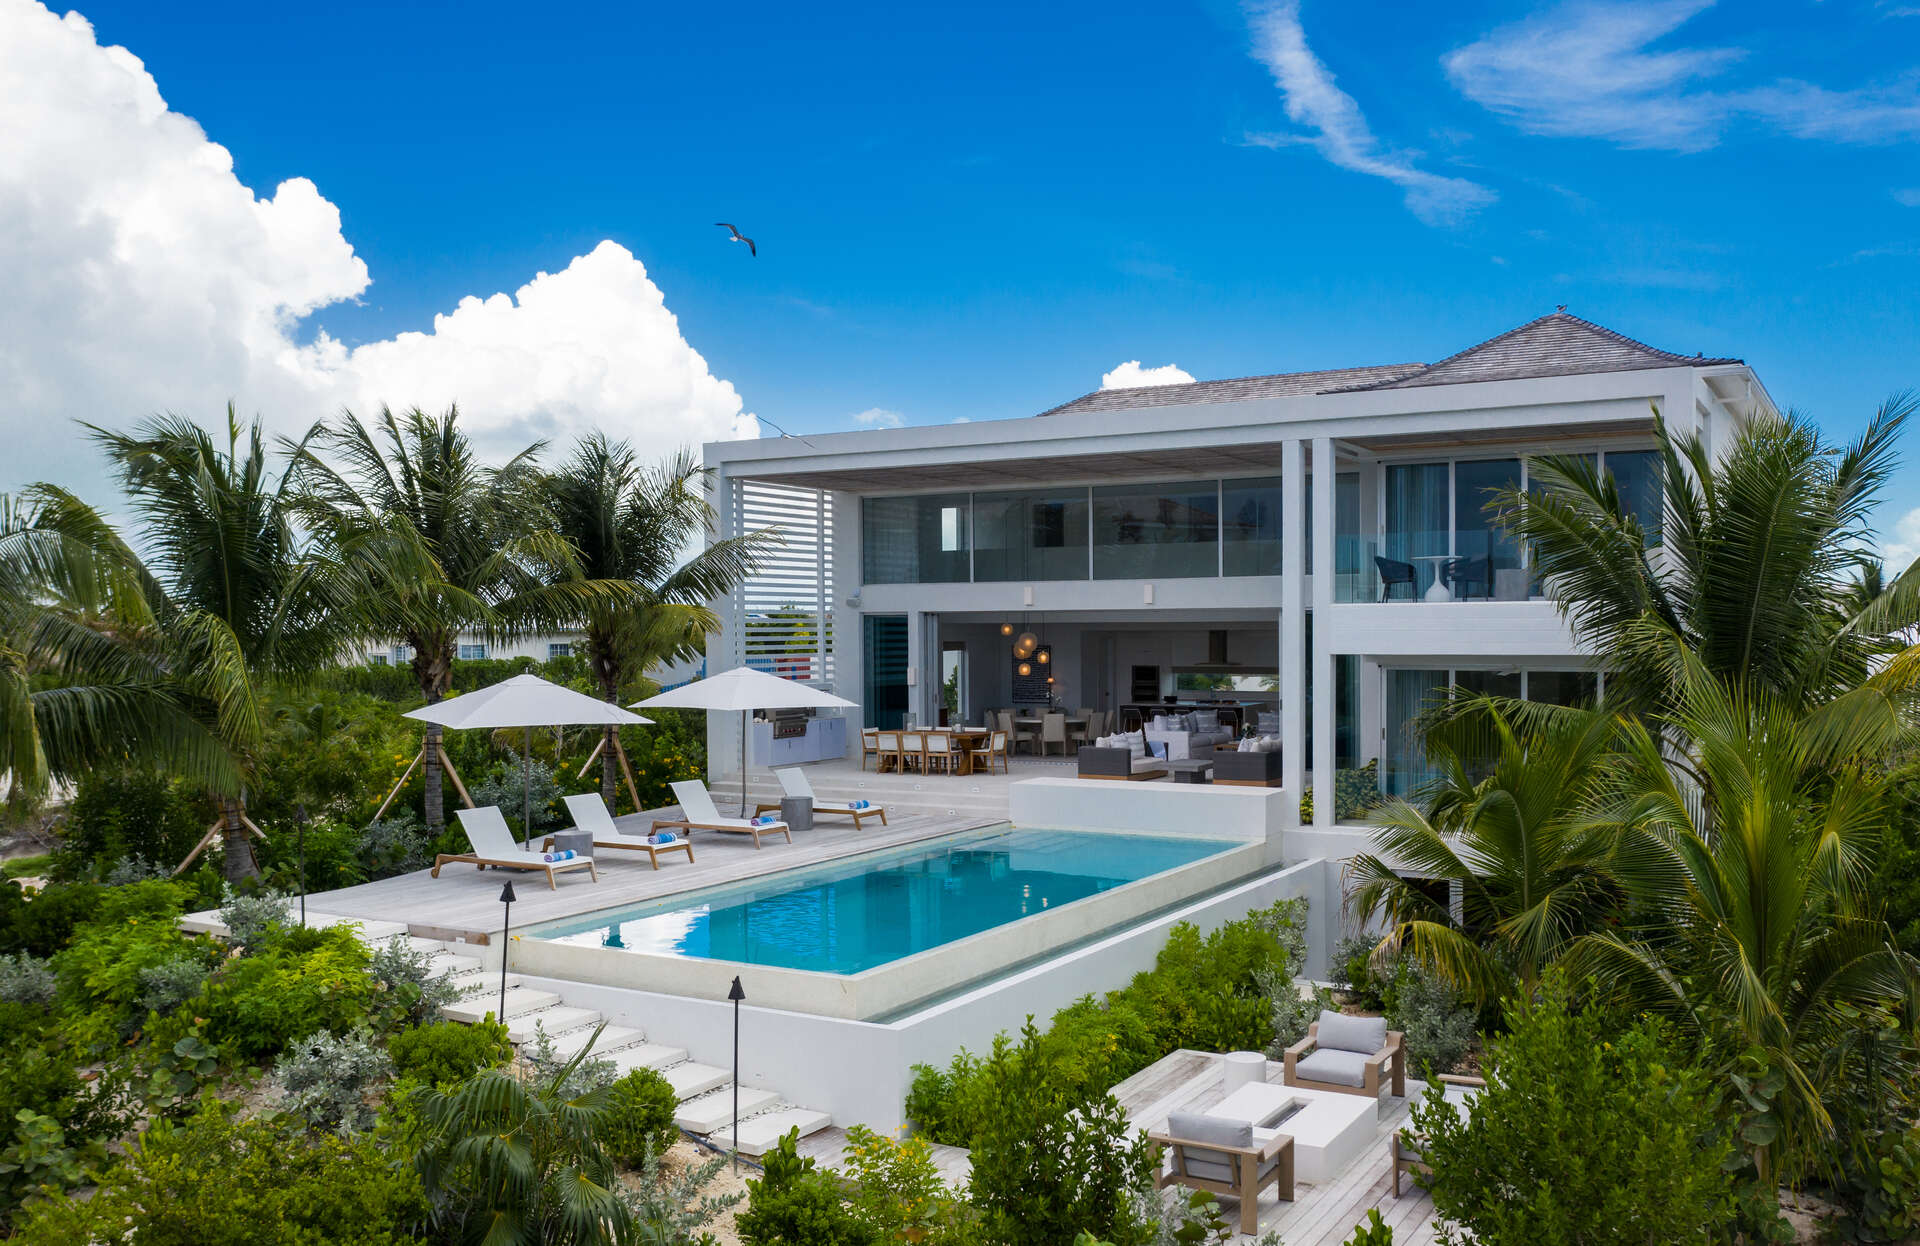 Luxury villa rentals caribbean - Turks and caicos - Providenciales - Beach enclave grace bay - Five Bedroom Ocean View - Image 1/47